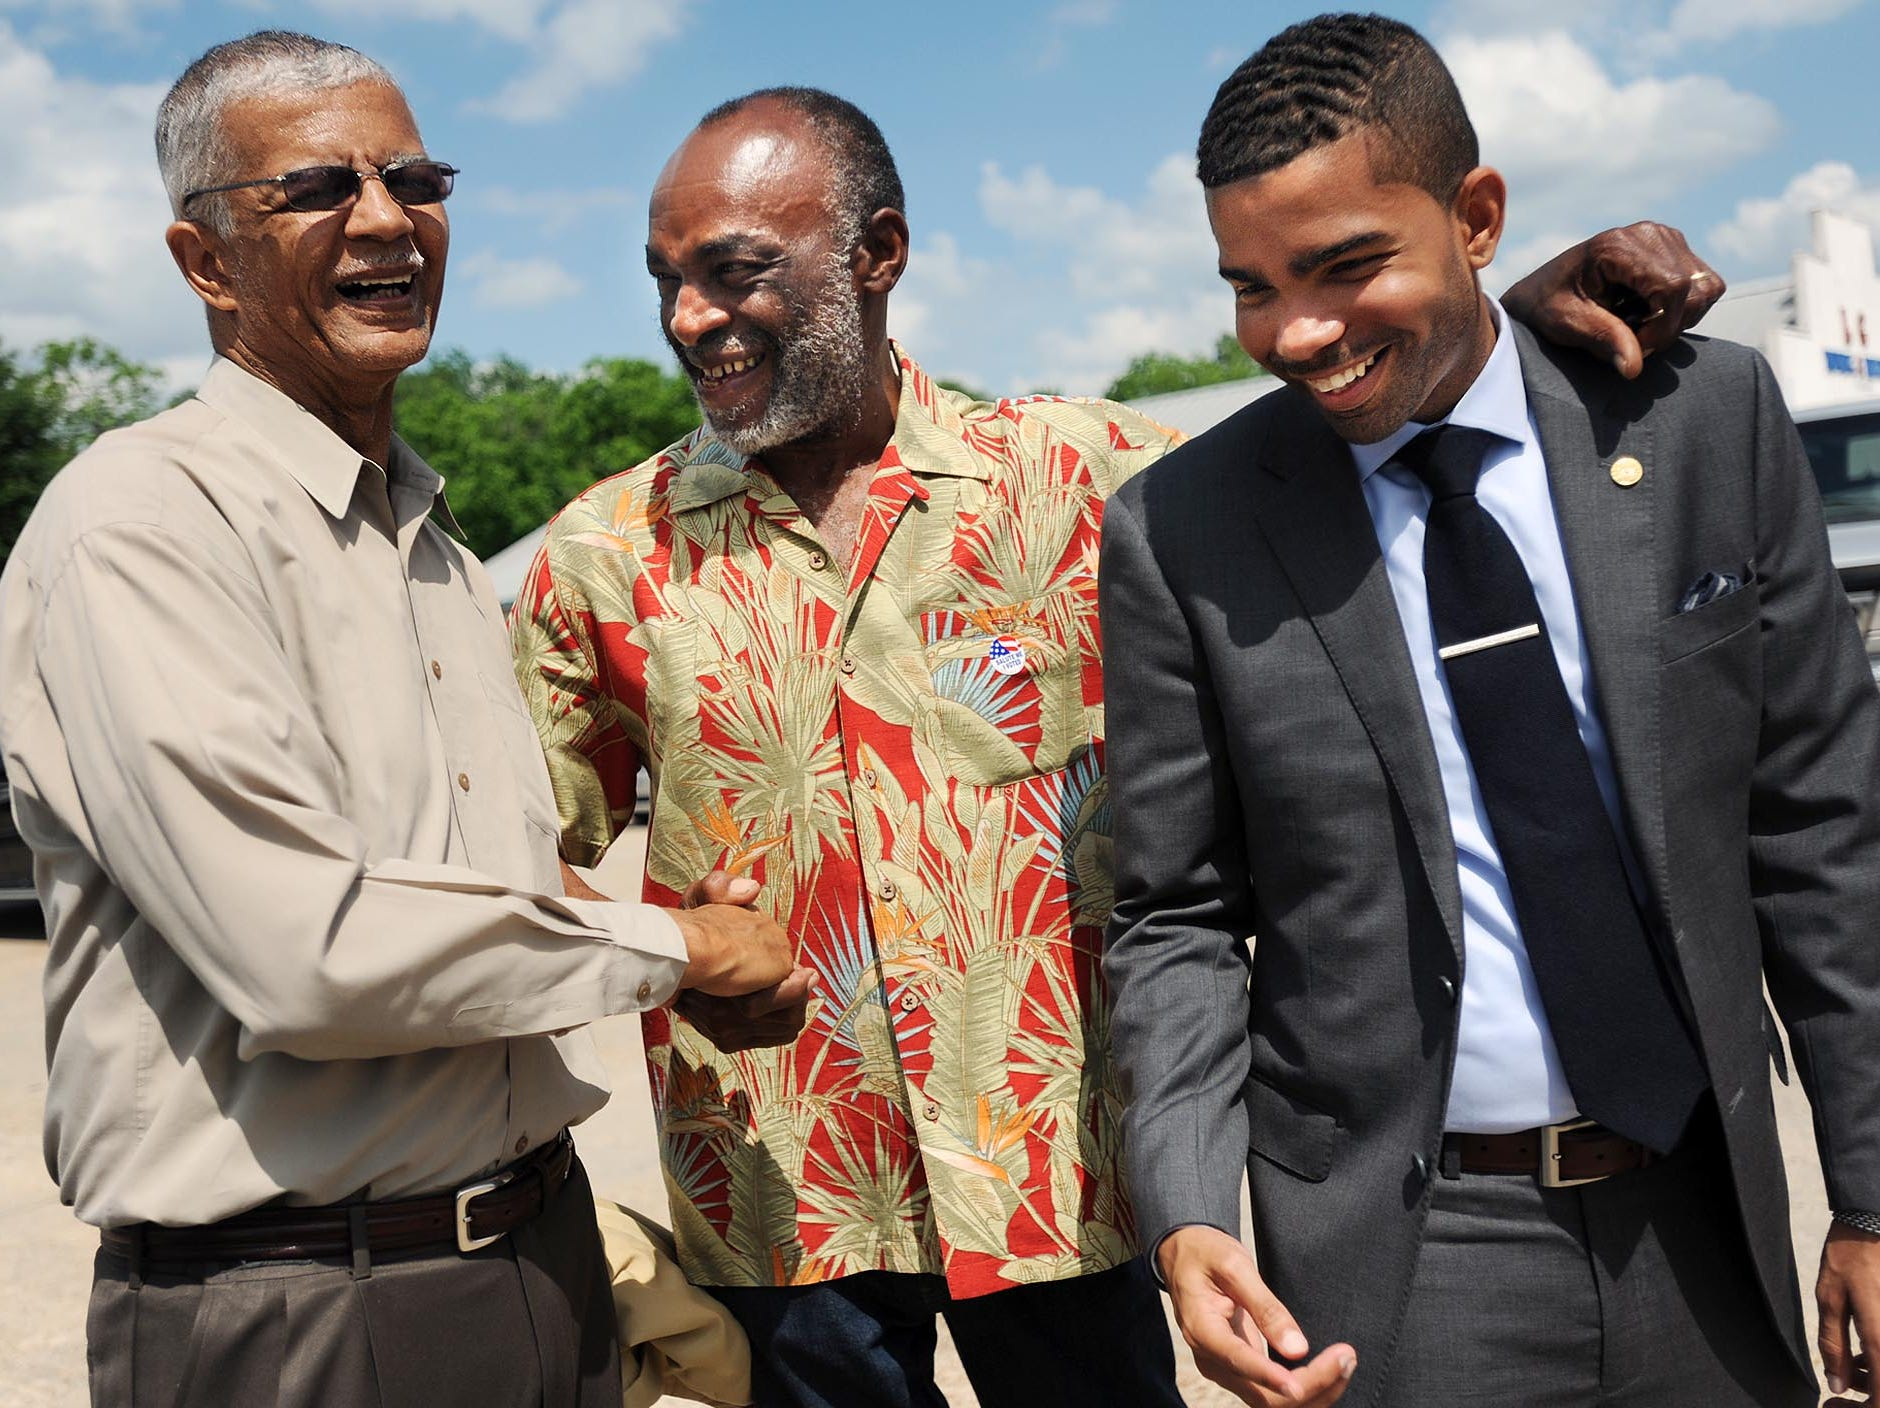 Mayoral candidate Chokwe Lumumba (left) shares a light moment with Rep. James Evans, D-Jackson and Lumumba's son Chokwe Antar Lumumba Tuesday afternoon. The elder Lumumba is in a runoff race against candidate Jonathan Lee.